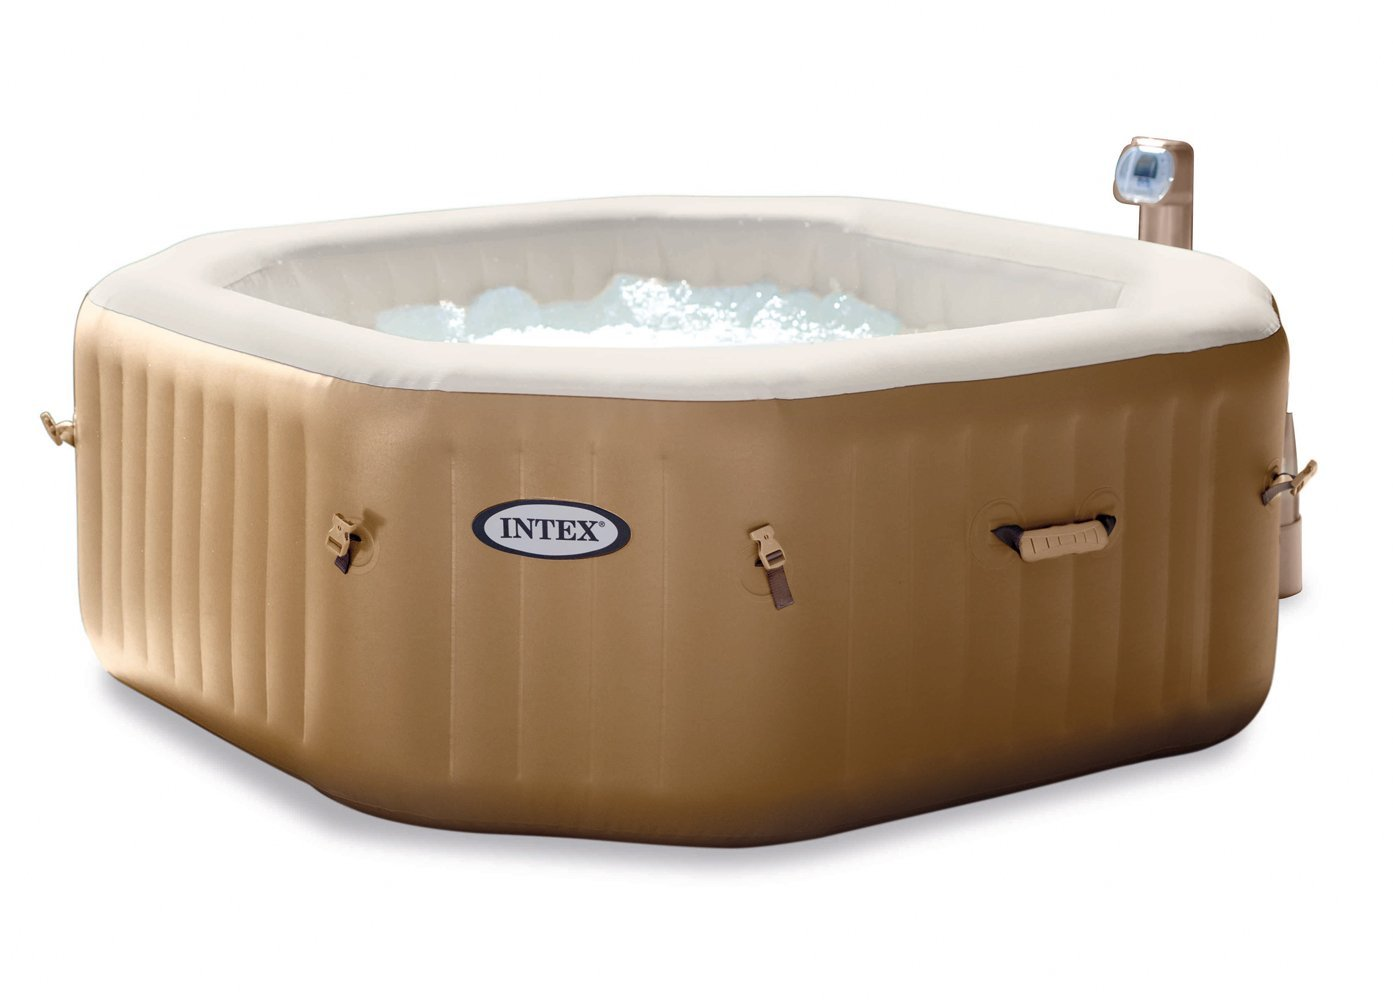 Intex Bubble Spa Inflatable Hot Tub